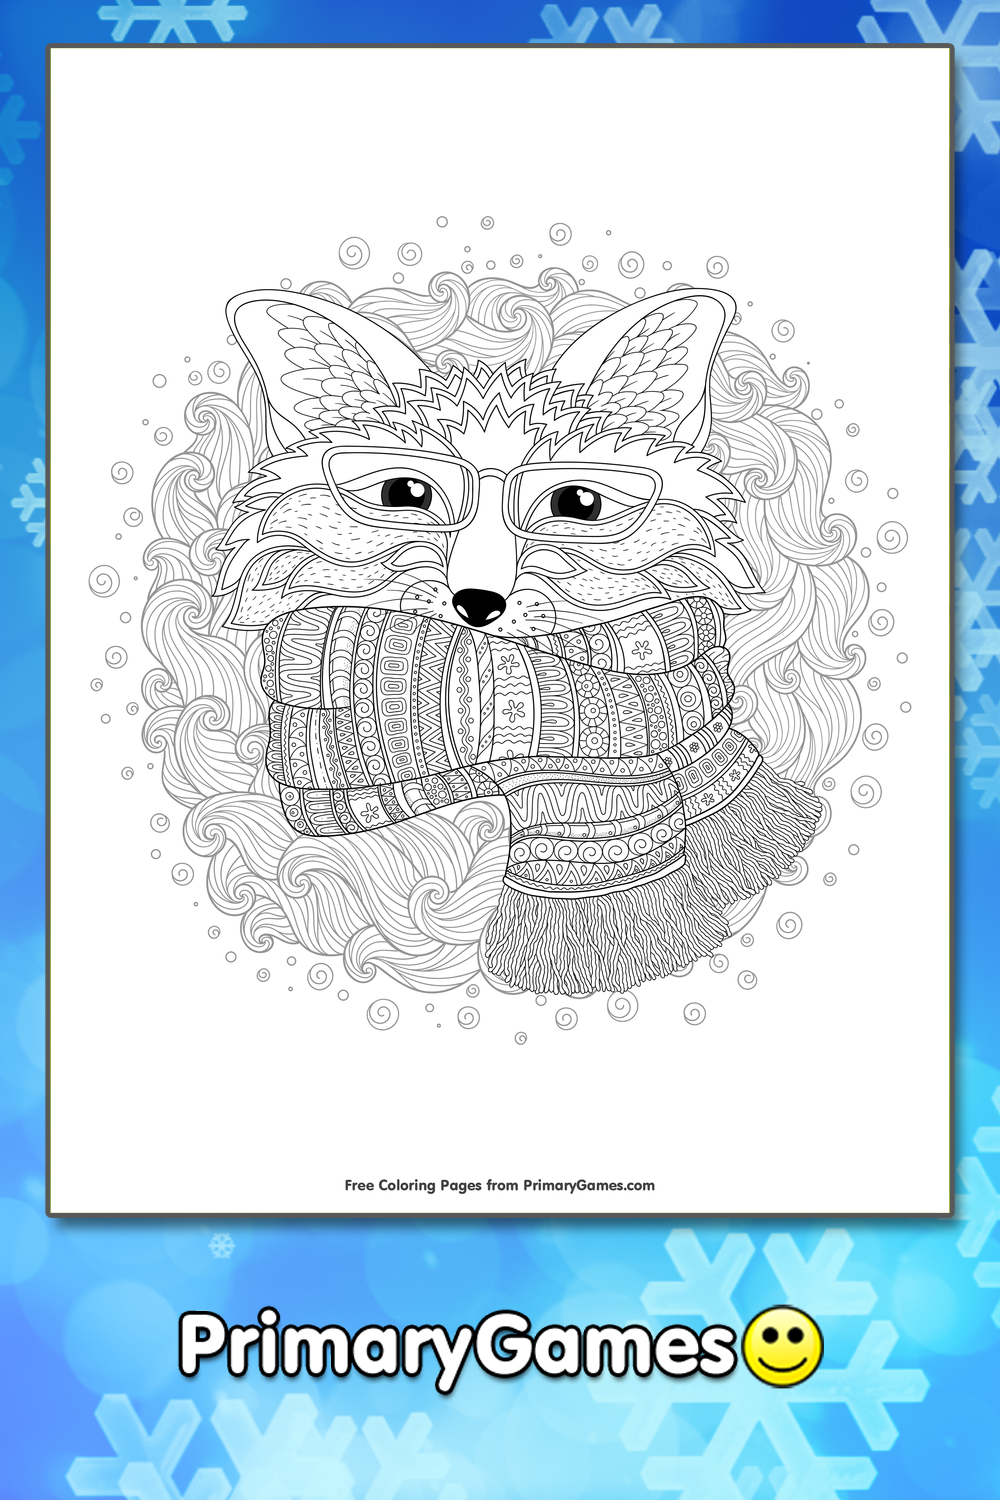 Winter Coloring Pages| Printable Coloring Pages - PrimaryGames